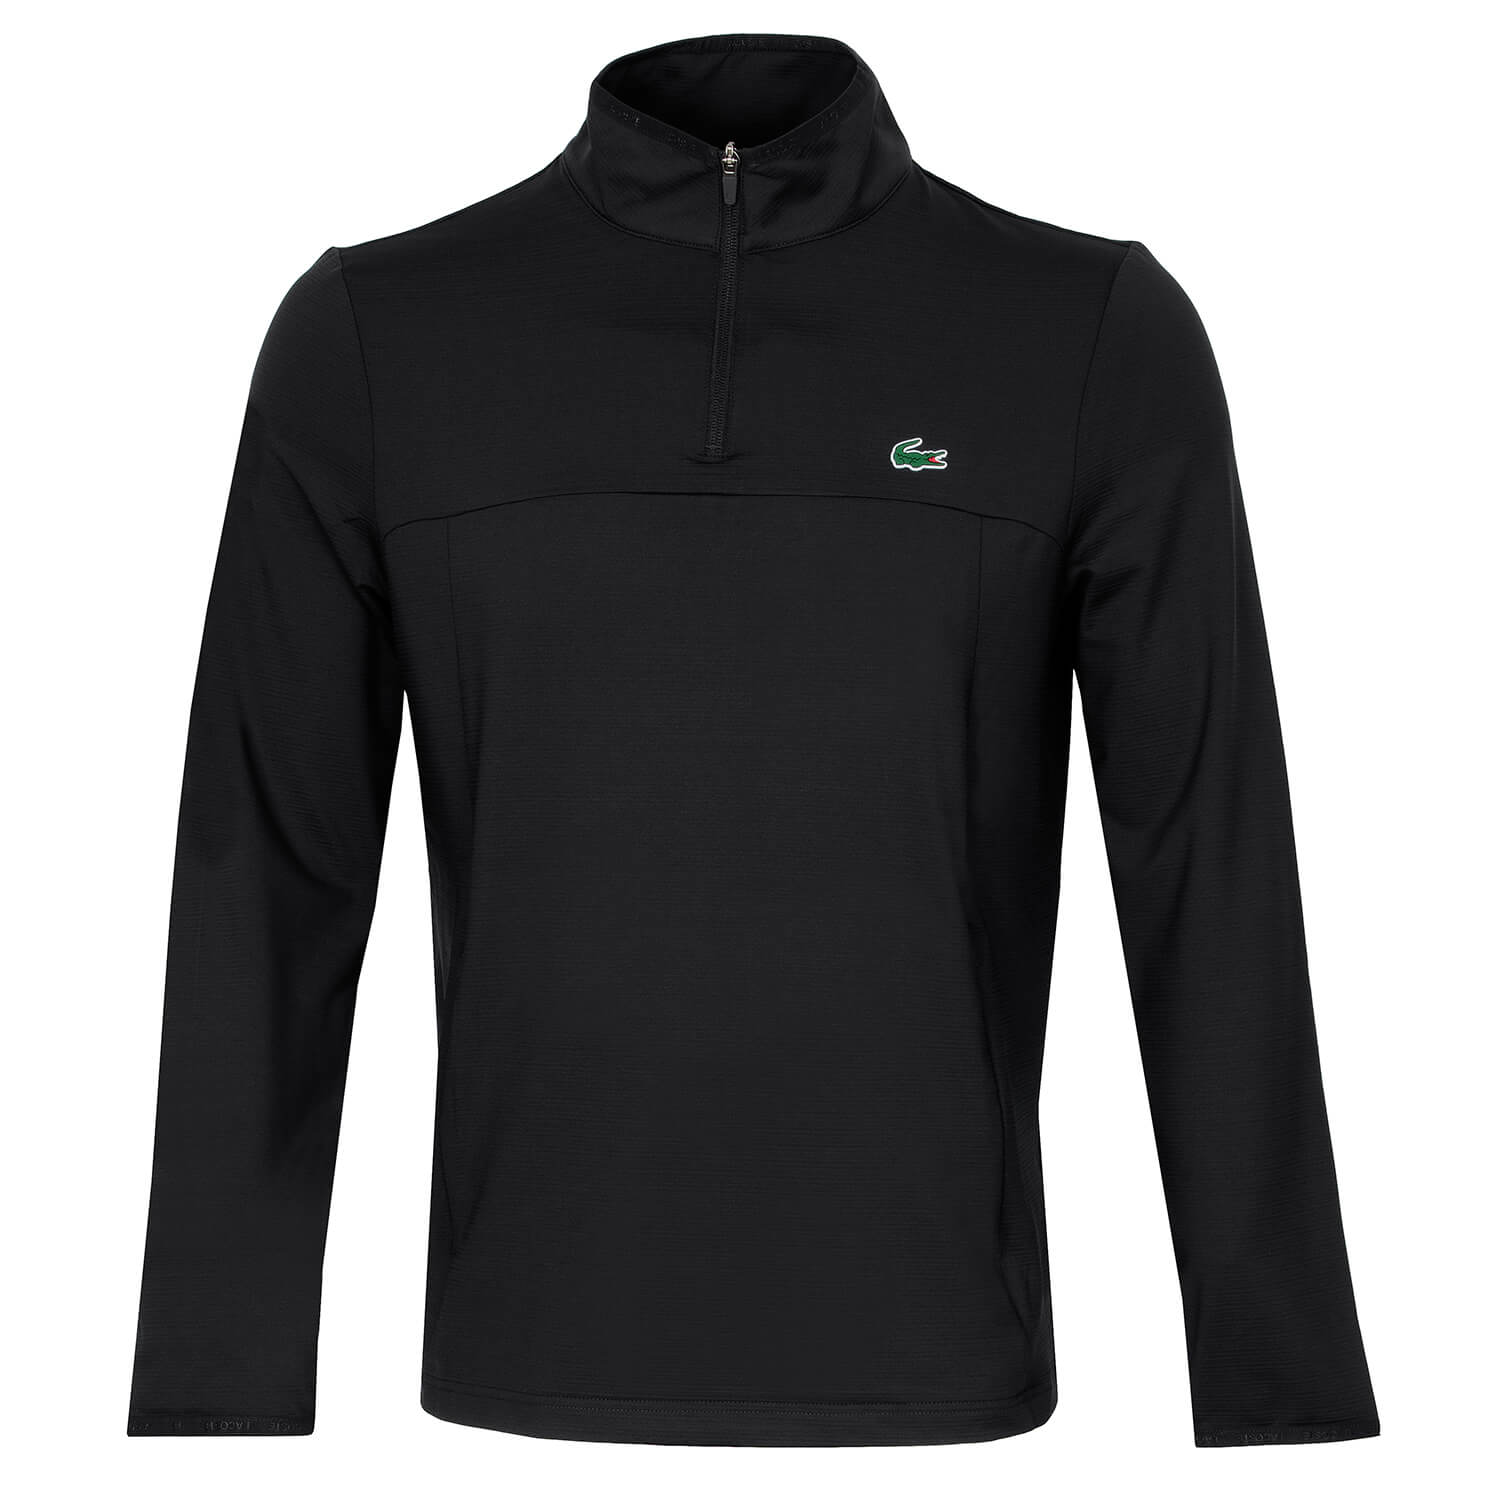 Image of Lacoste Technical Half Zip Sweater